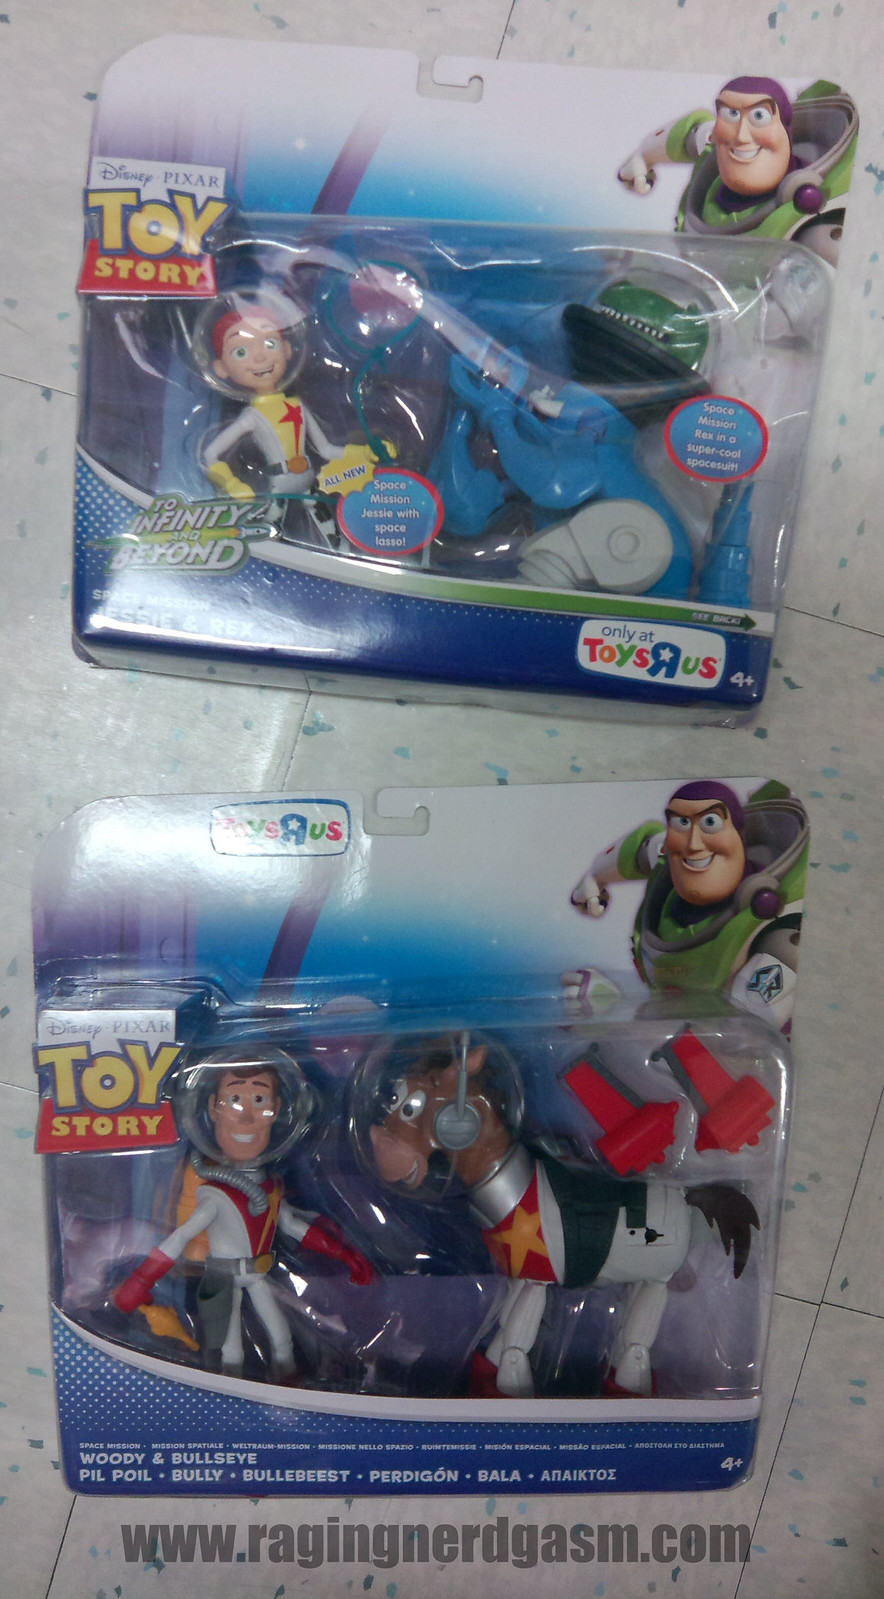 Pixar's Toy story Action FiguresSpace Mission_01